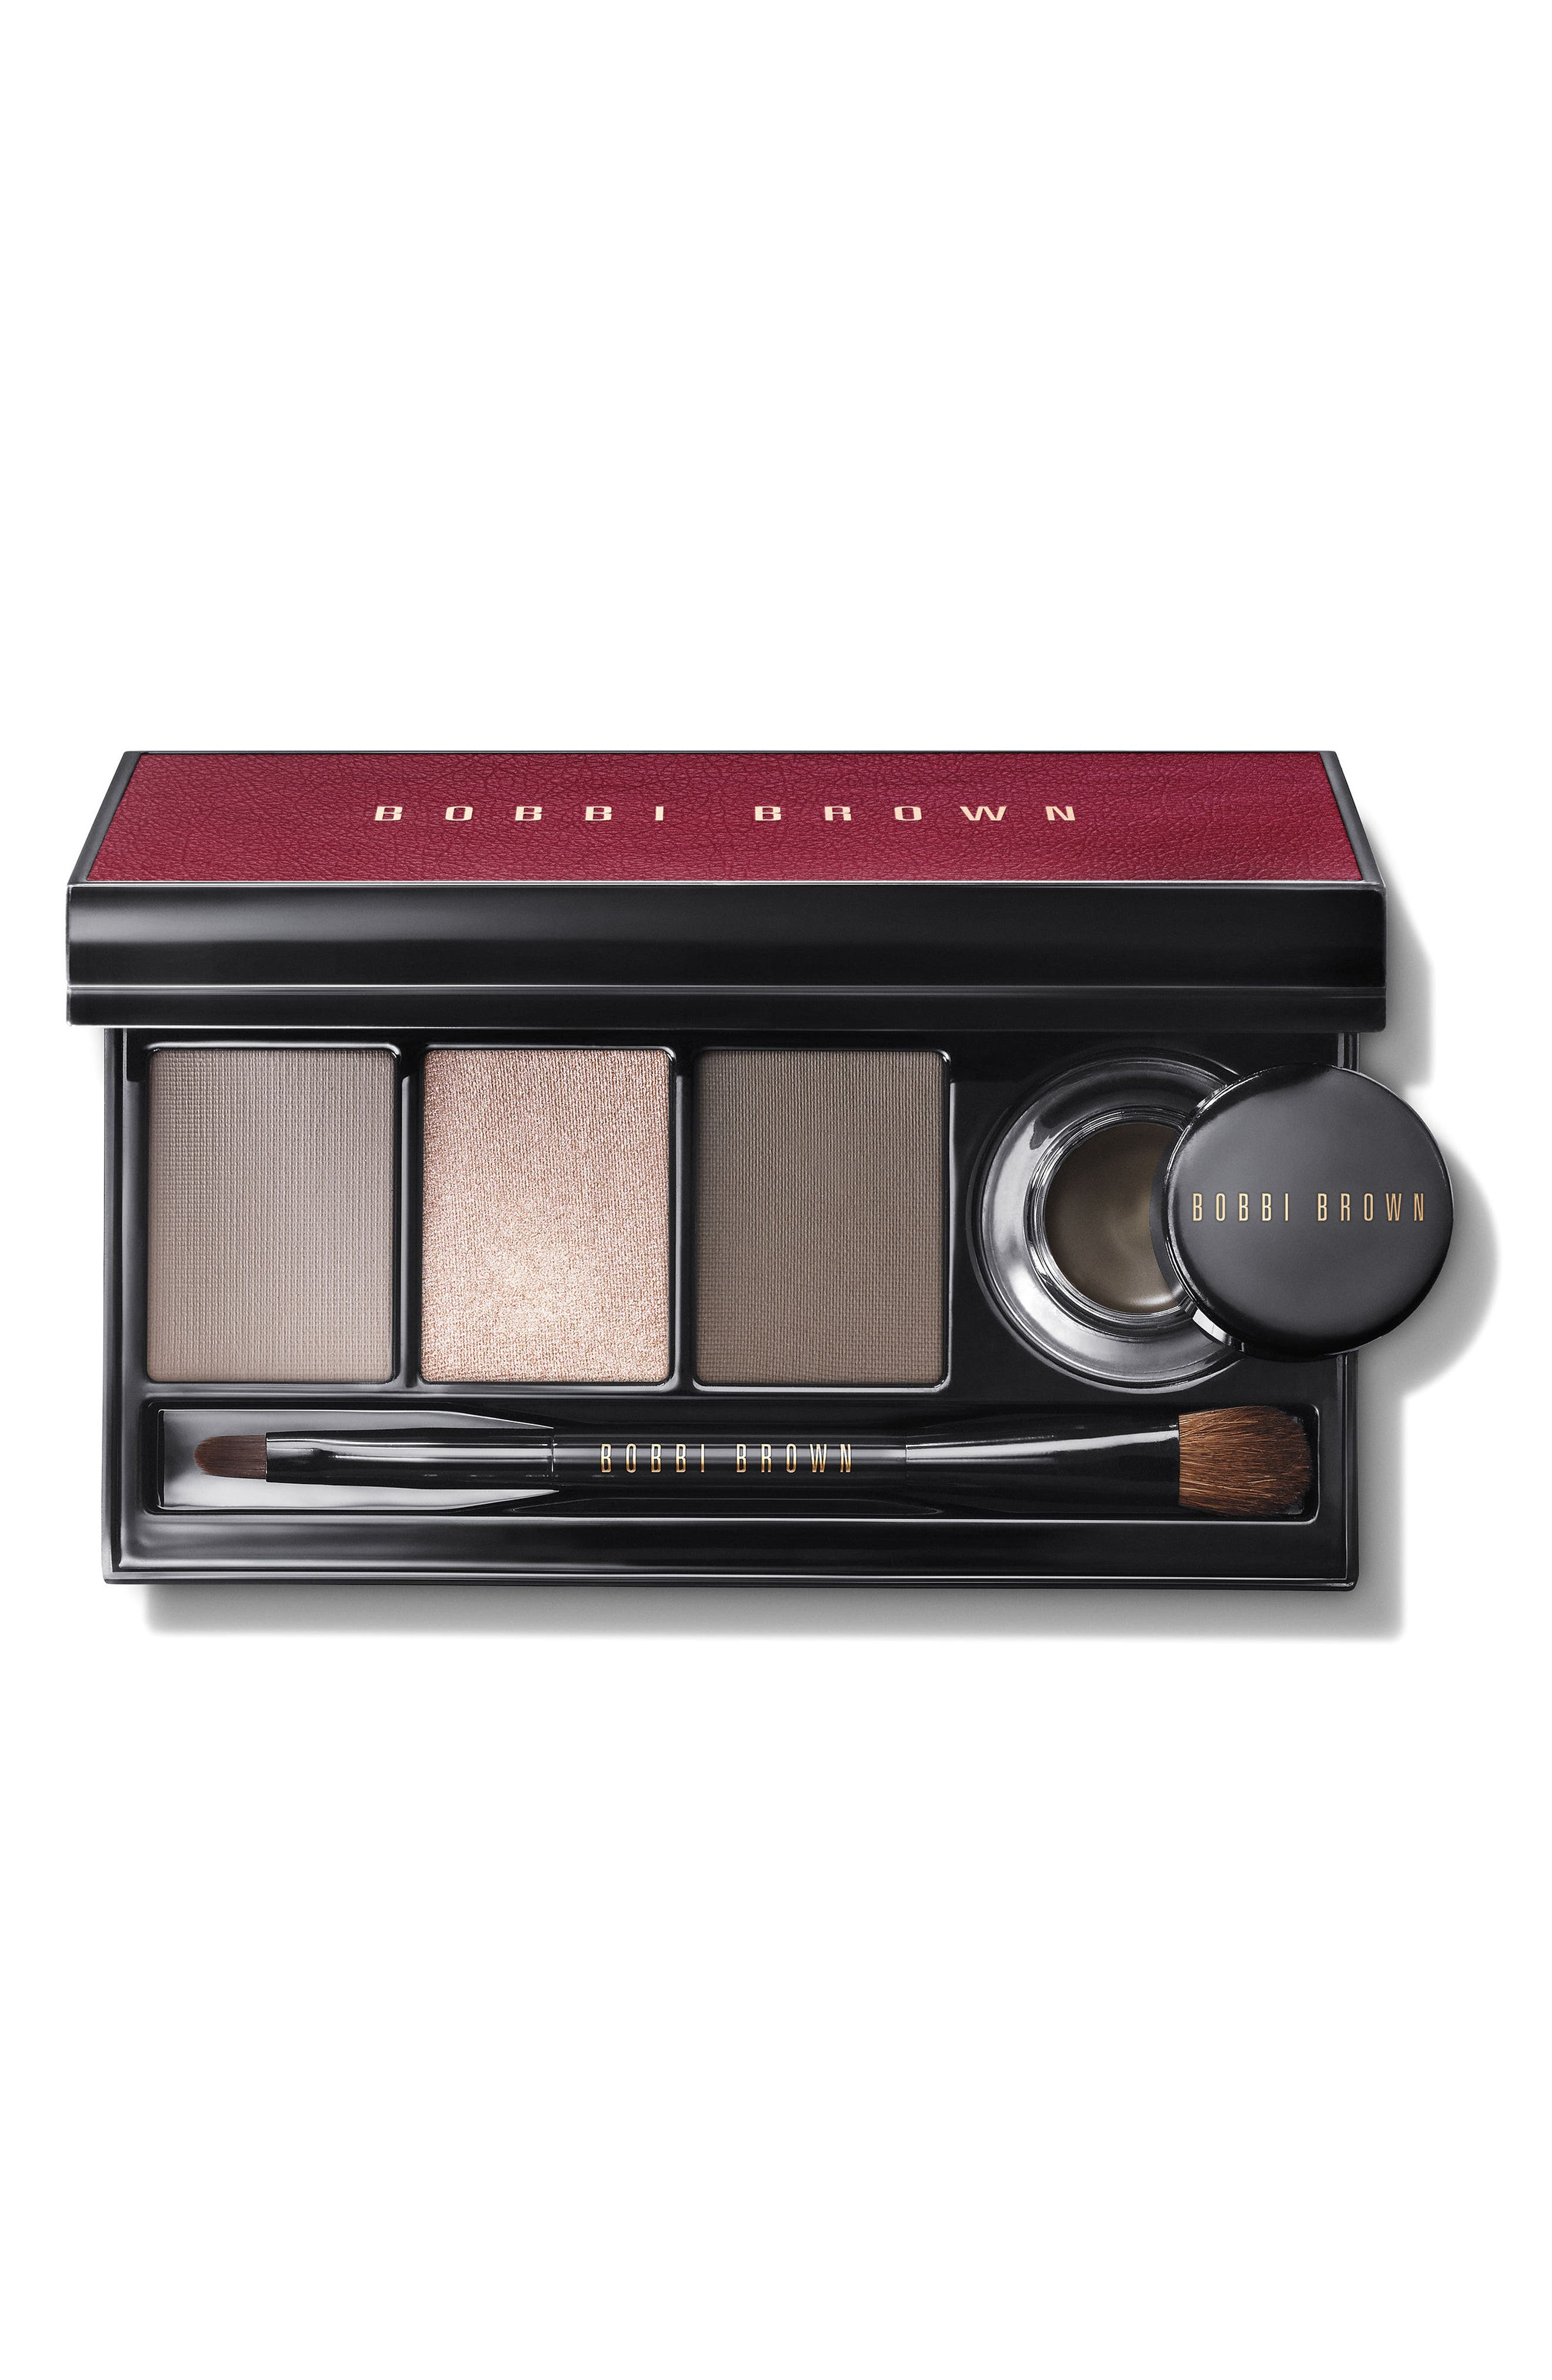 Alternate Image 1 Selected - Bobbi Brown Satin & Caviar Eyeshadow & Long-Wear Gel Eyeliner Palette ($106 Value)